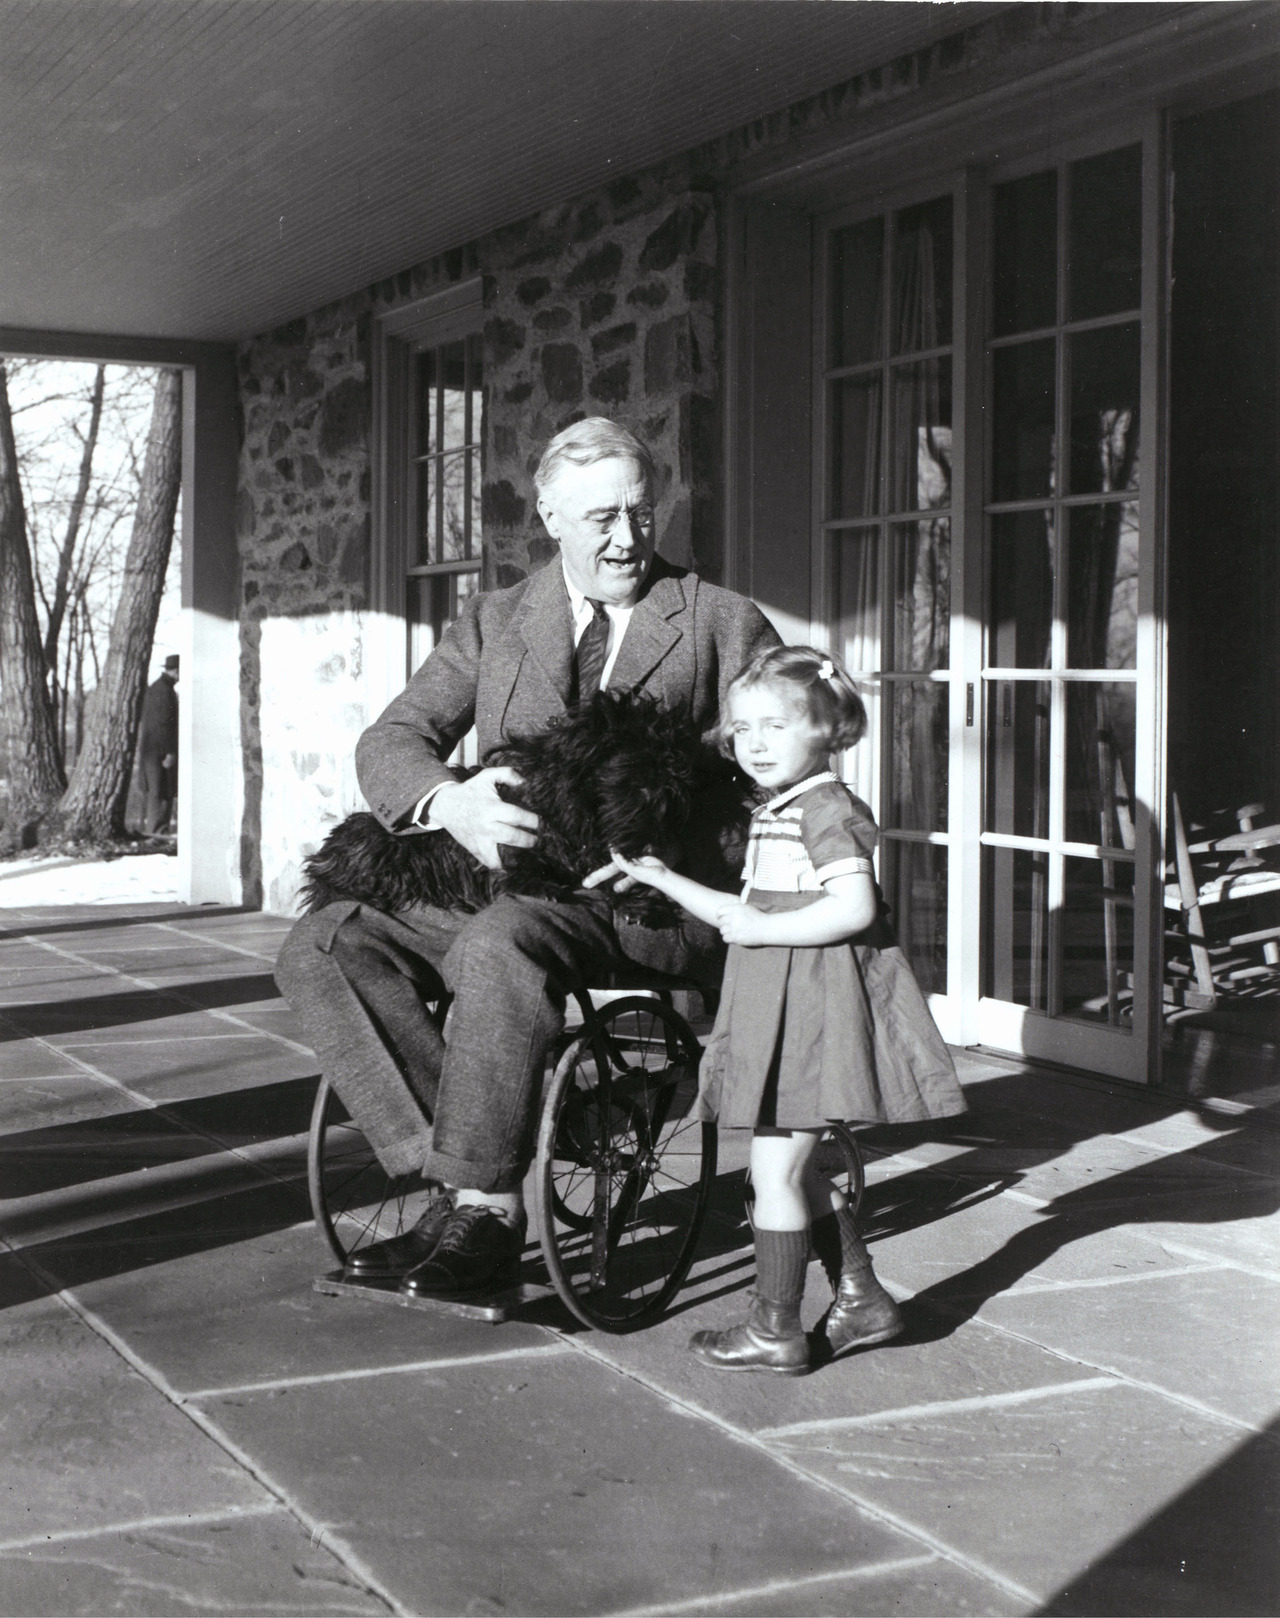 Rare photograph of Franklin D. Roosevelt, with Fala and Ruthie Bie, the daughter of caretakers at Hill Top Cottage in Hyde Park. The better of two extant photos of FDR in a wheel chair. Photo taken by his cousin Margaret Suckley (February 1941)